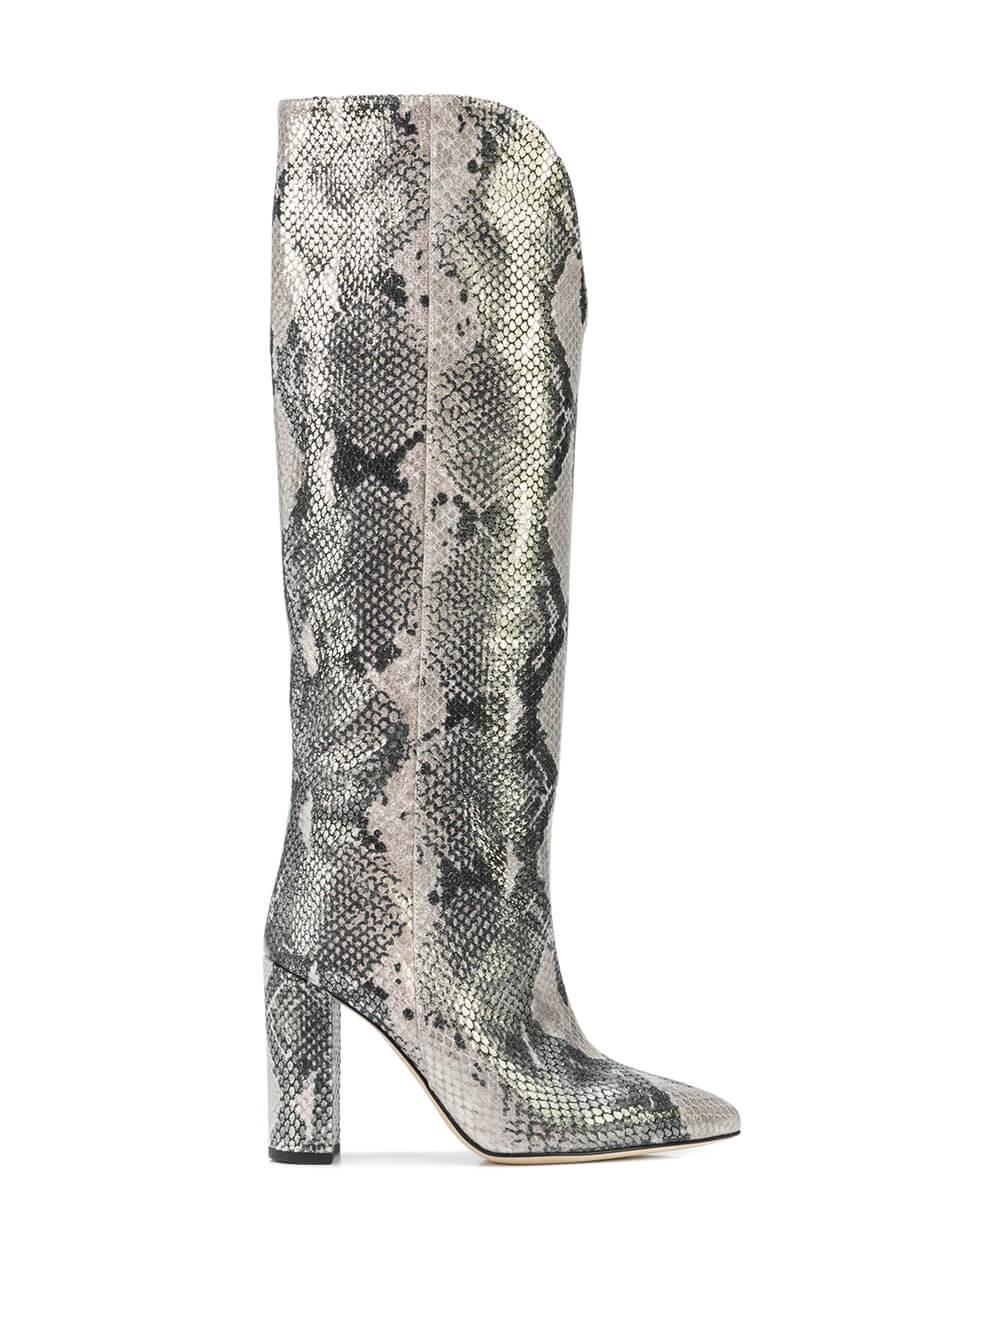 Python Lame Print High Rounded Boot